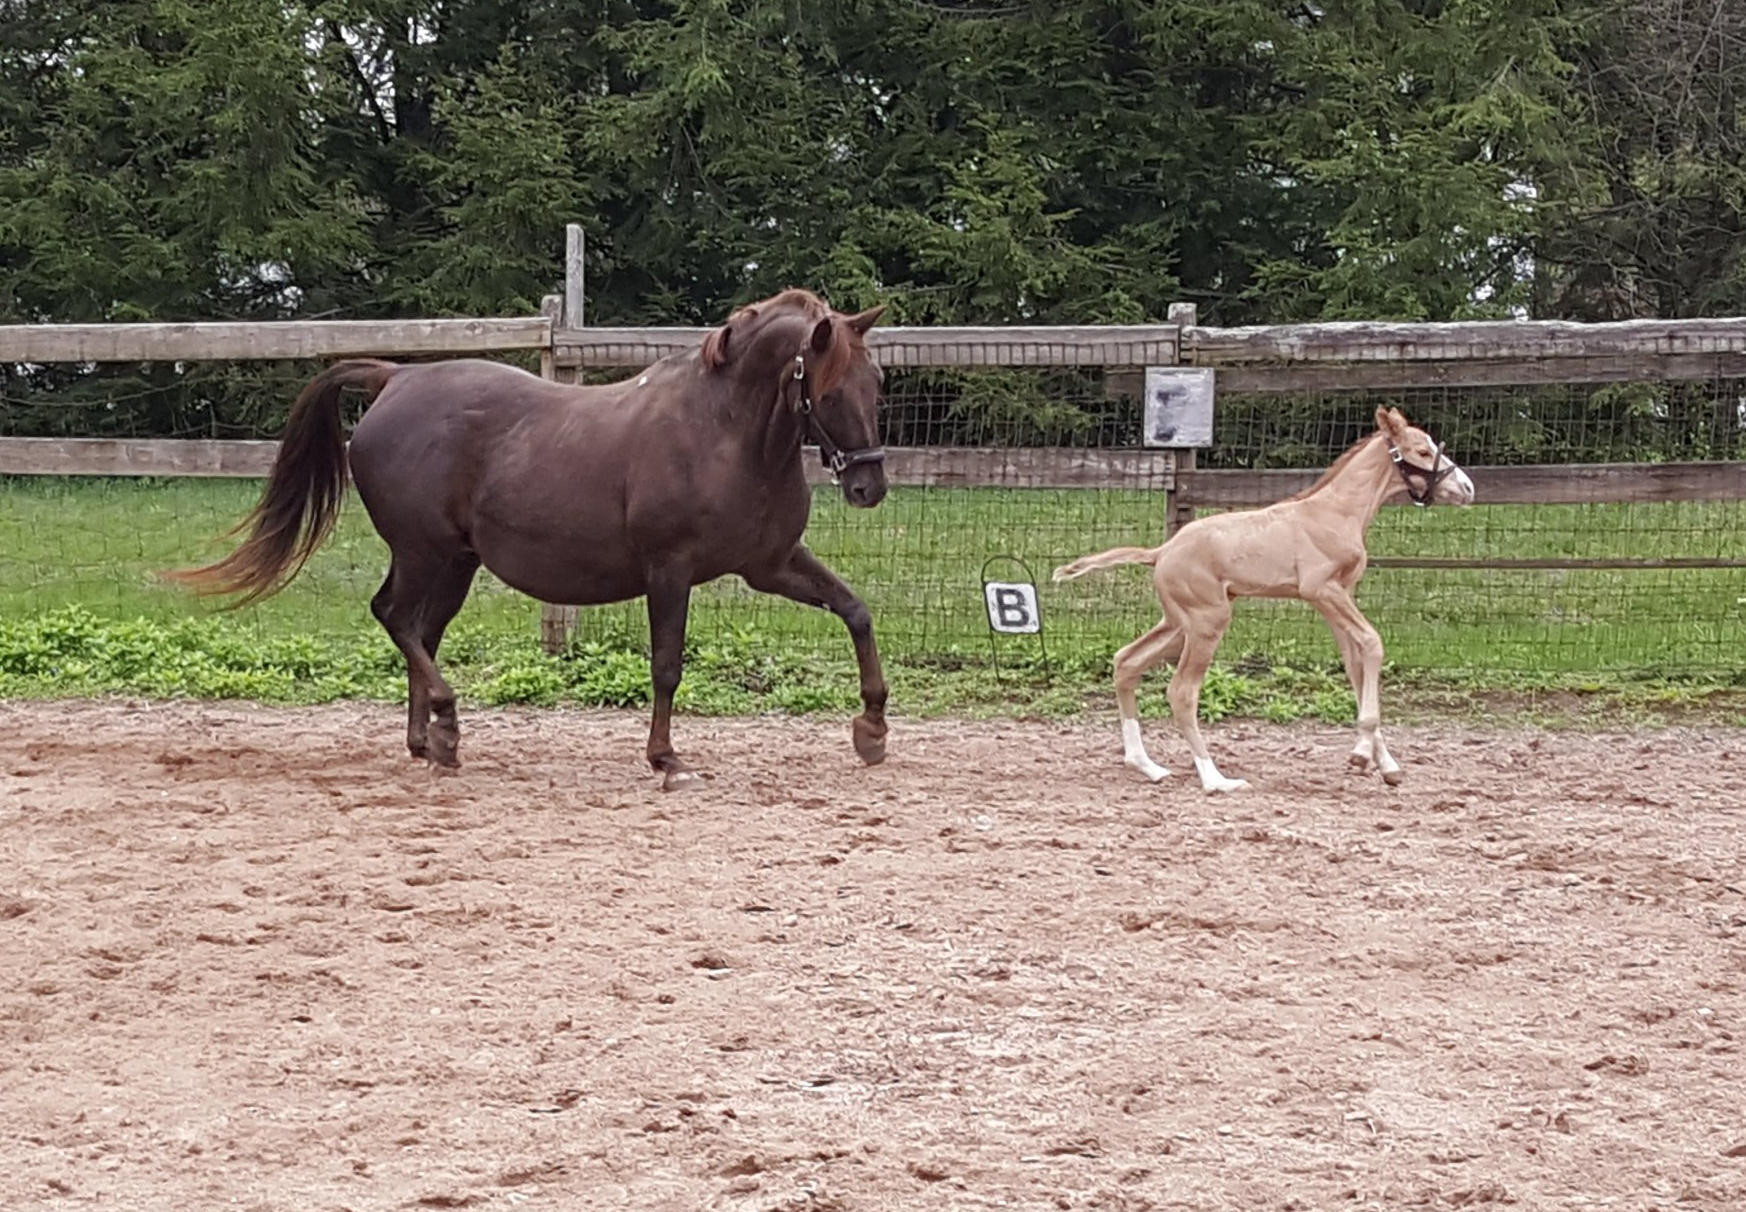 A chestnut mare and her filly